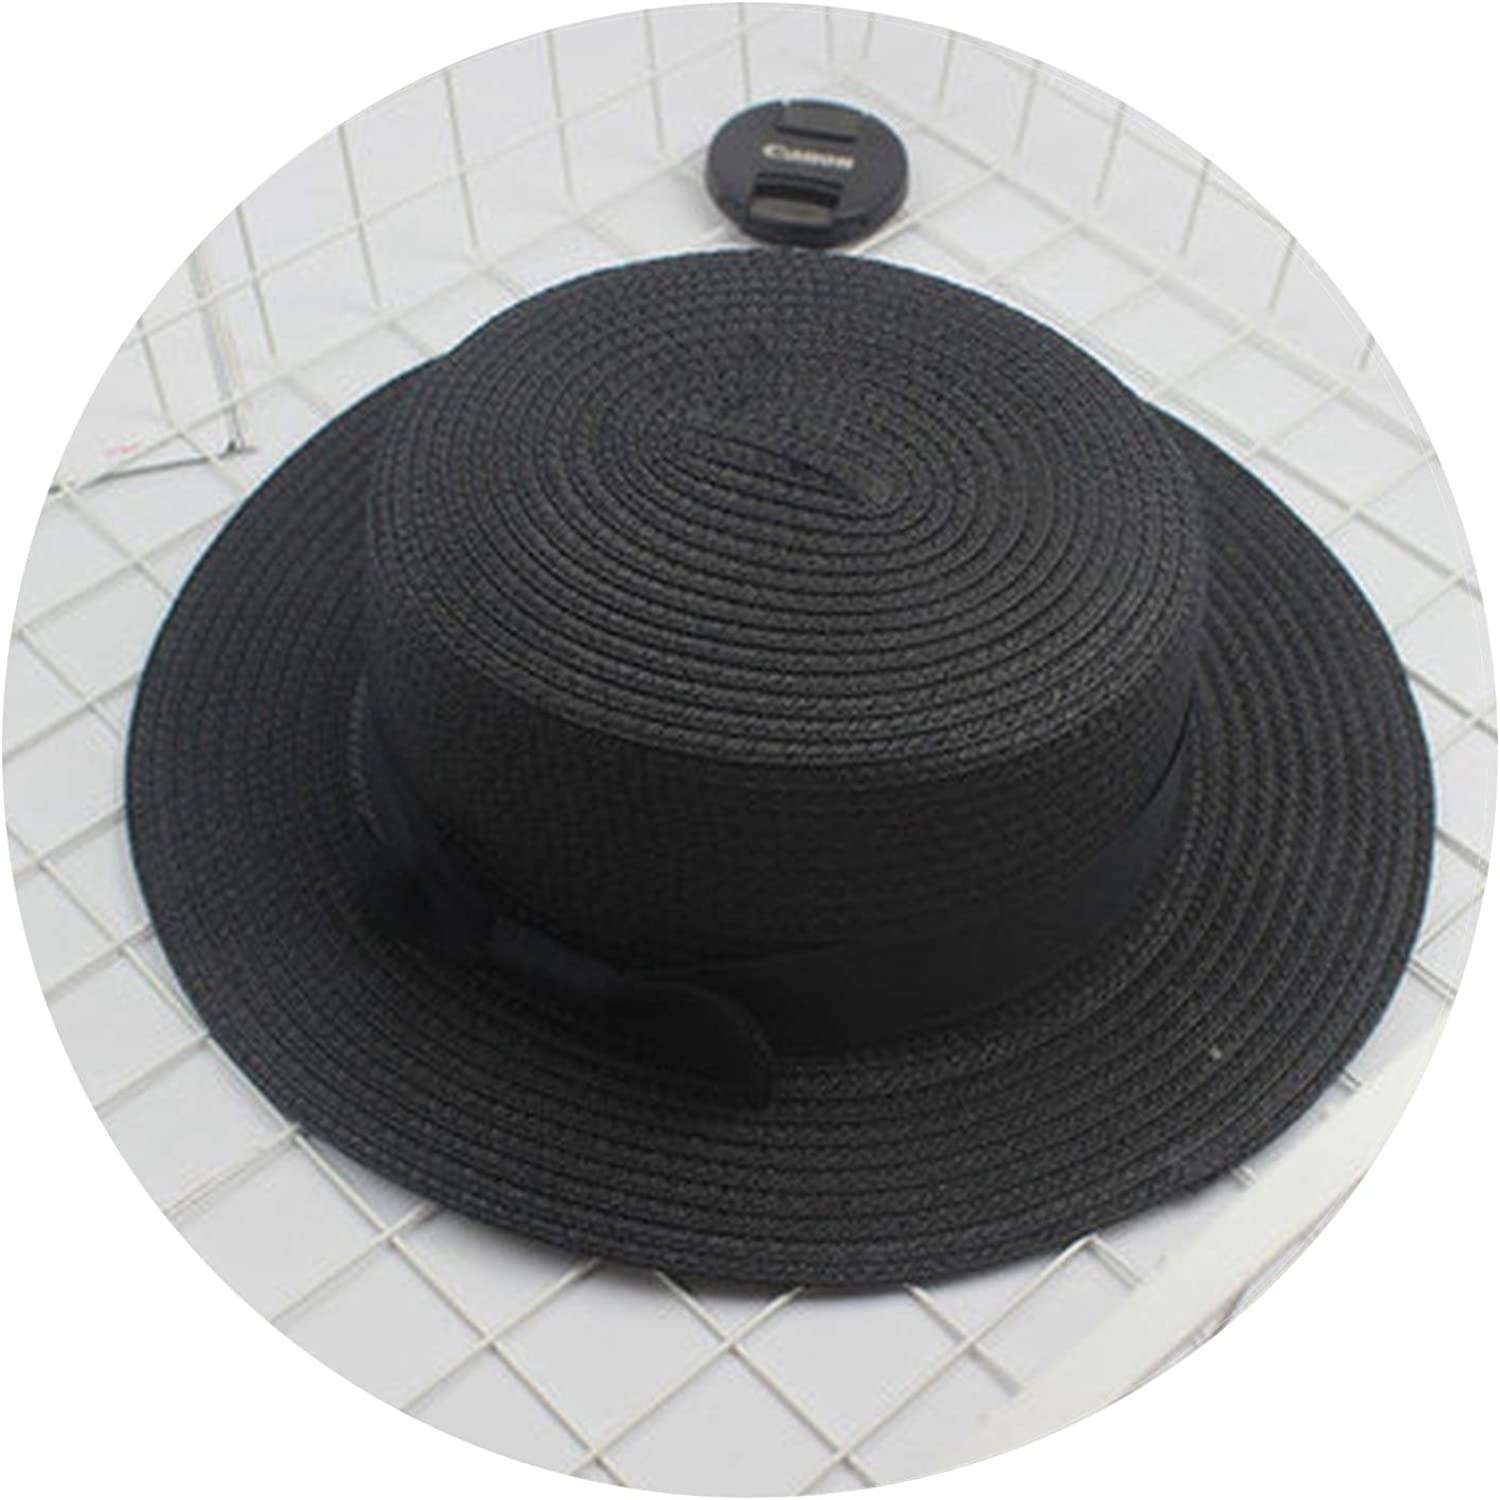 Parent-Child Sun hat Cute Sun Hats Bow Women Straw Cap Beach Big Brim hat,3,Adult Size 56-58cm